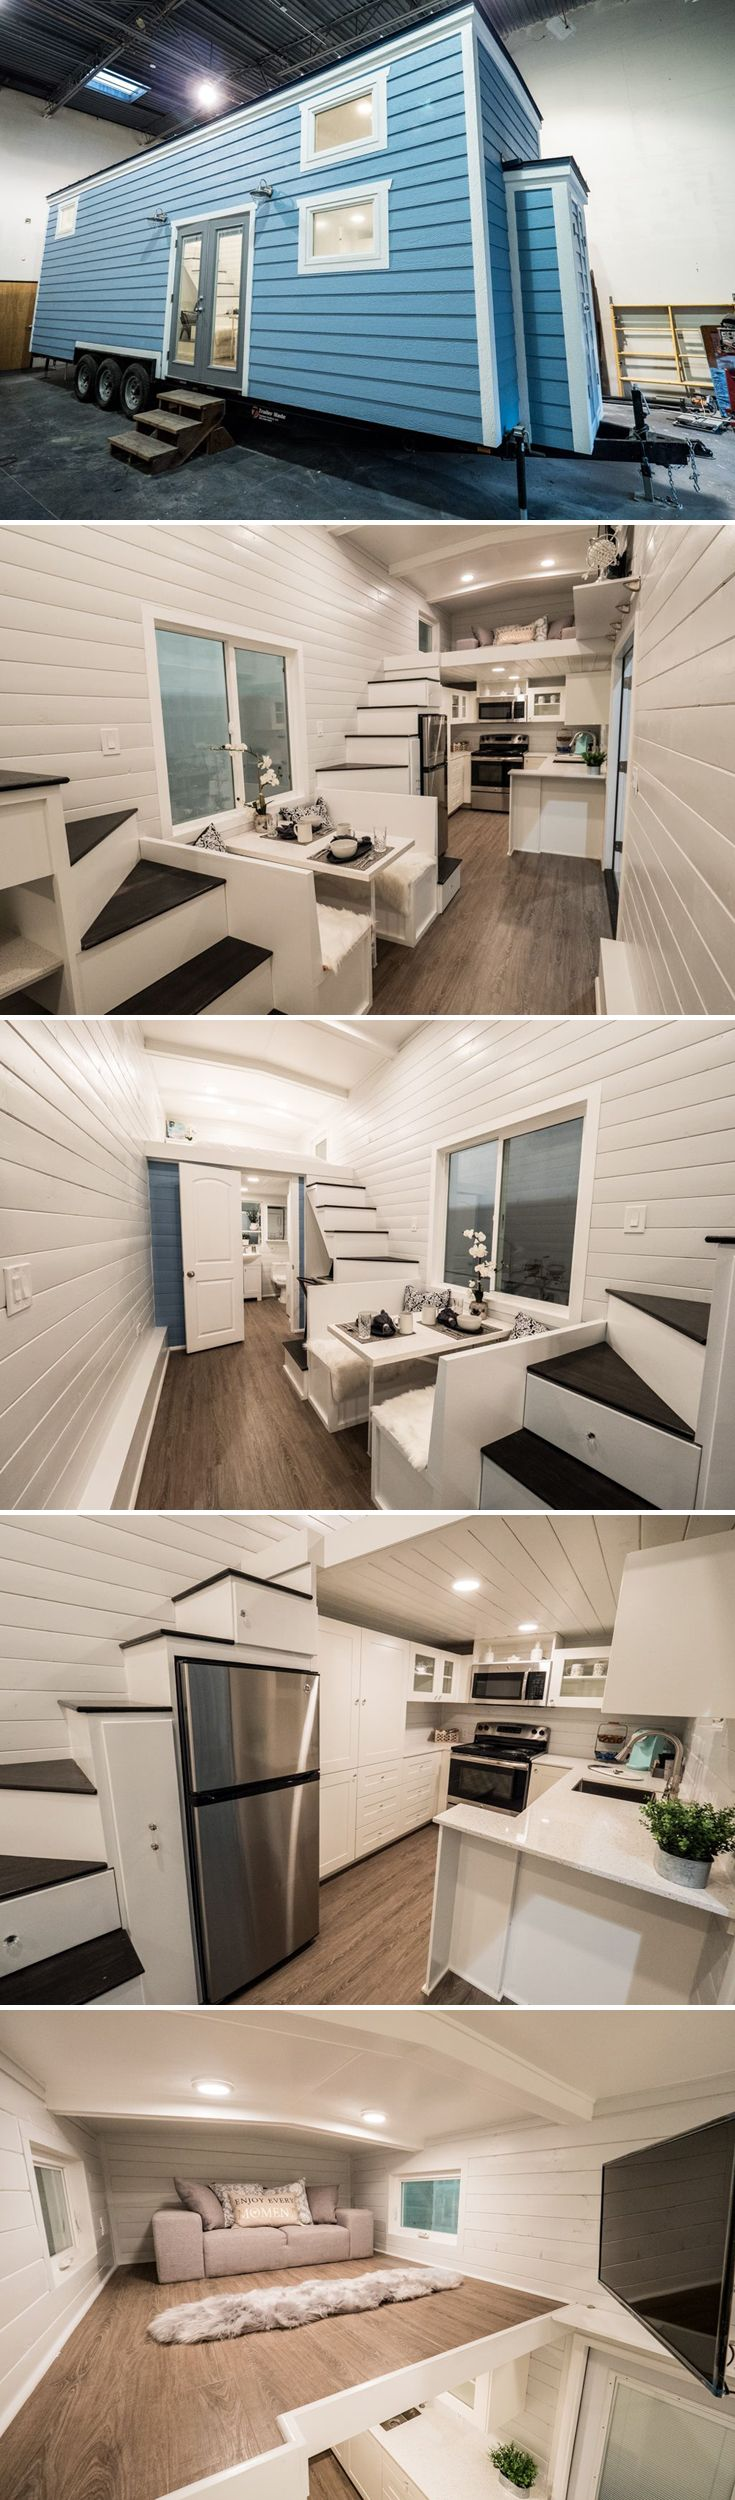 Best 25+ Tiny house trailer ideas on Pinterest | Small garden ...